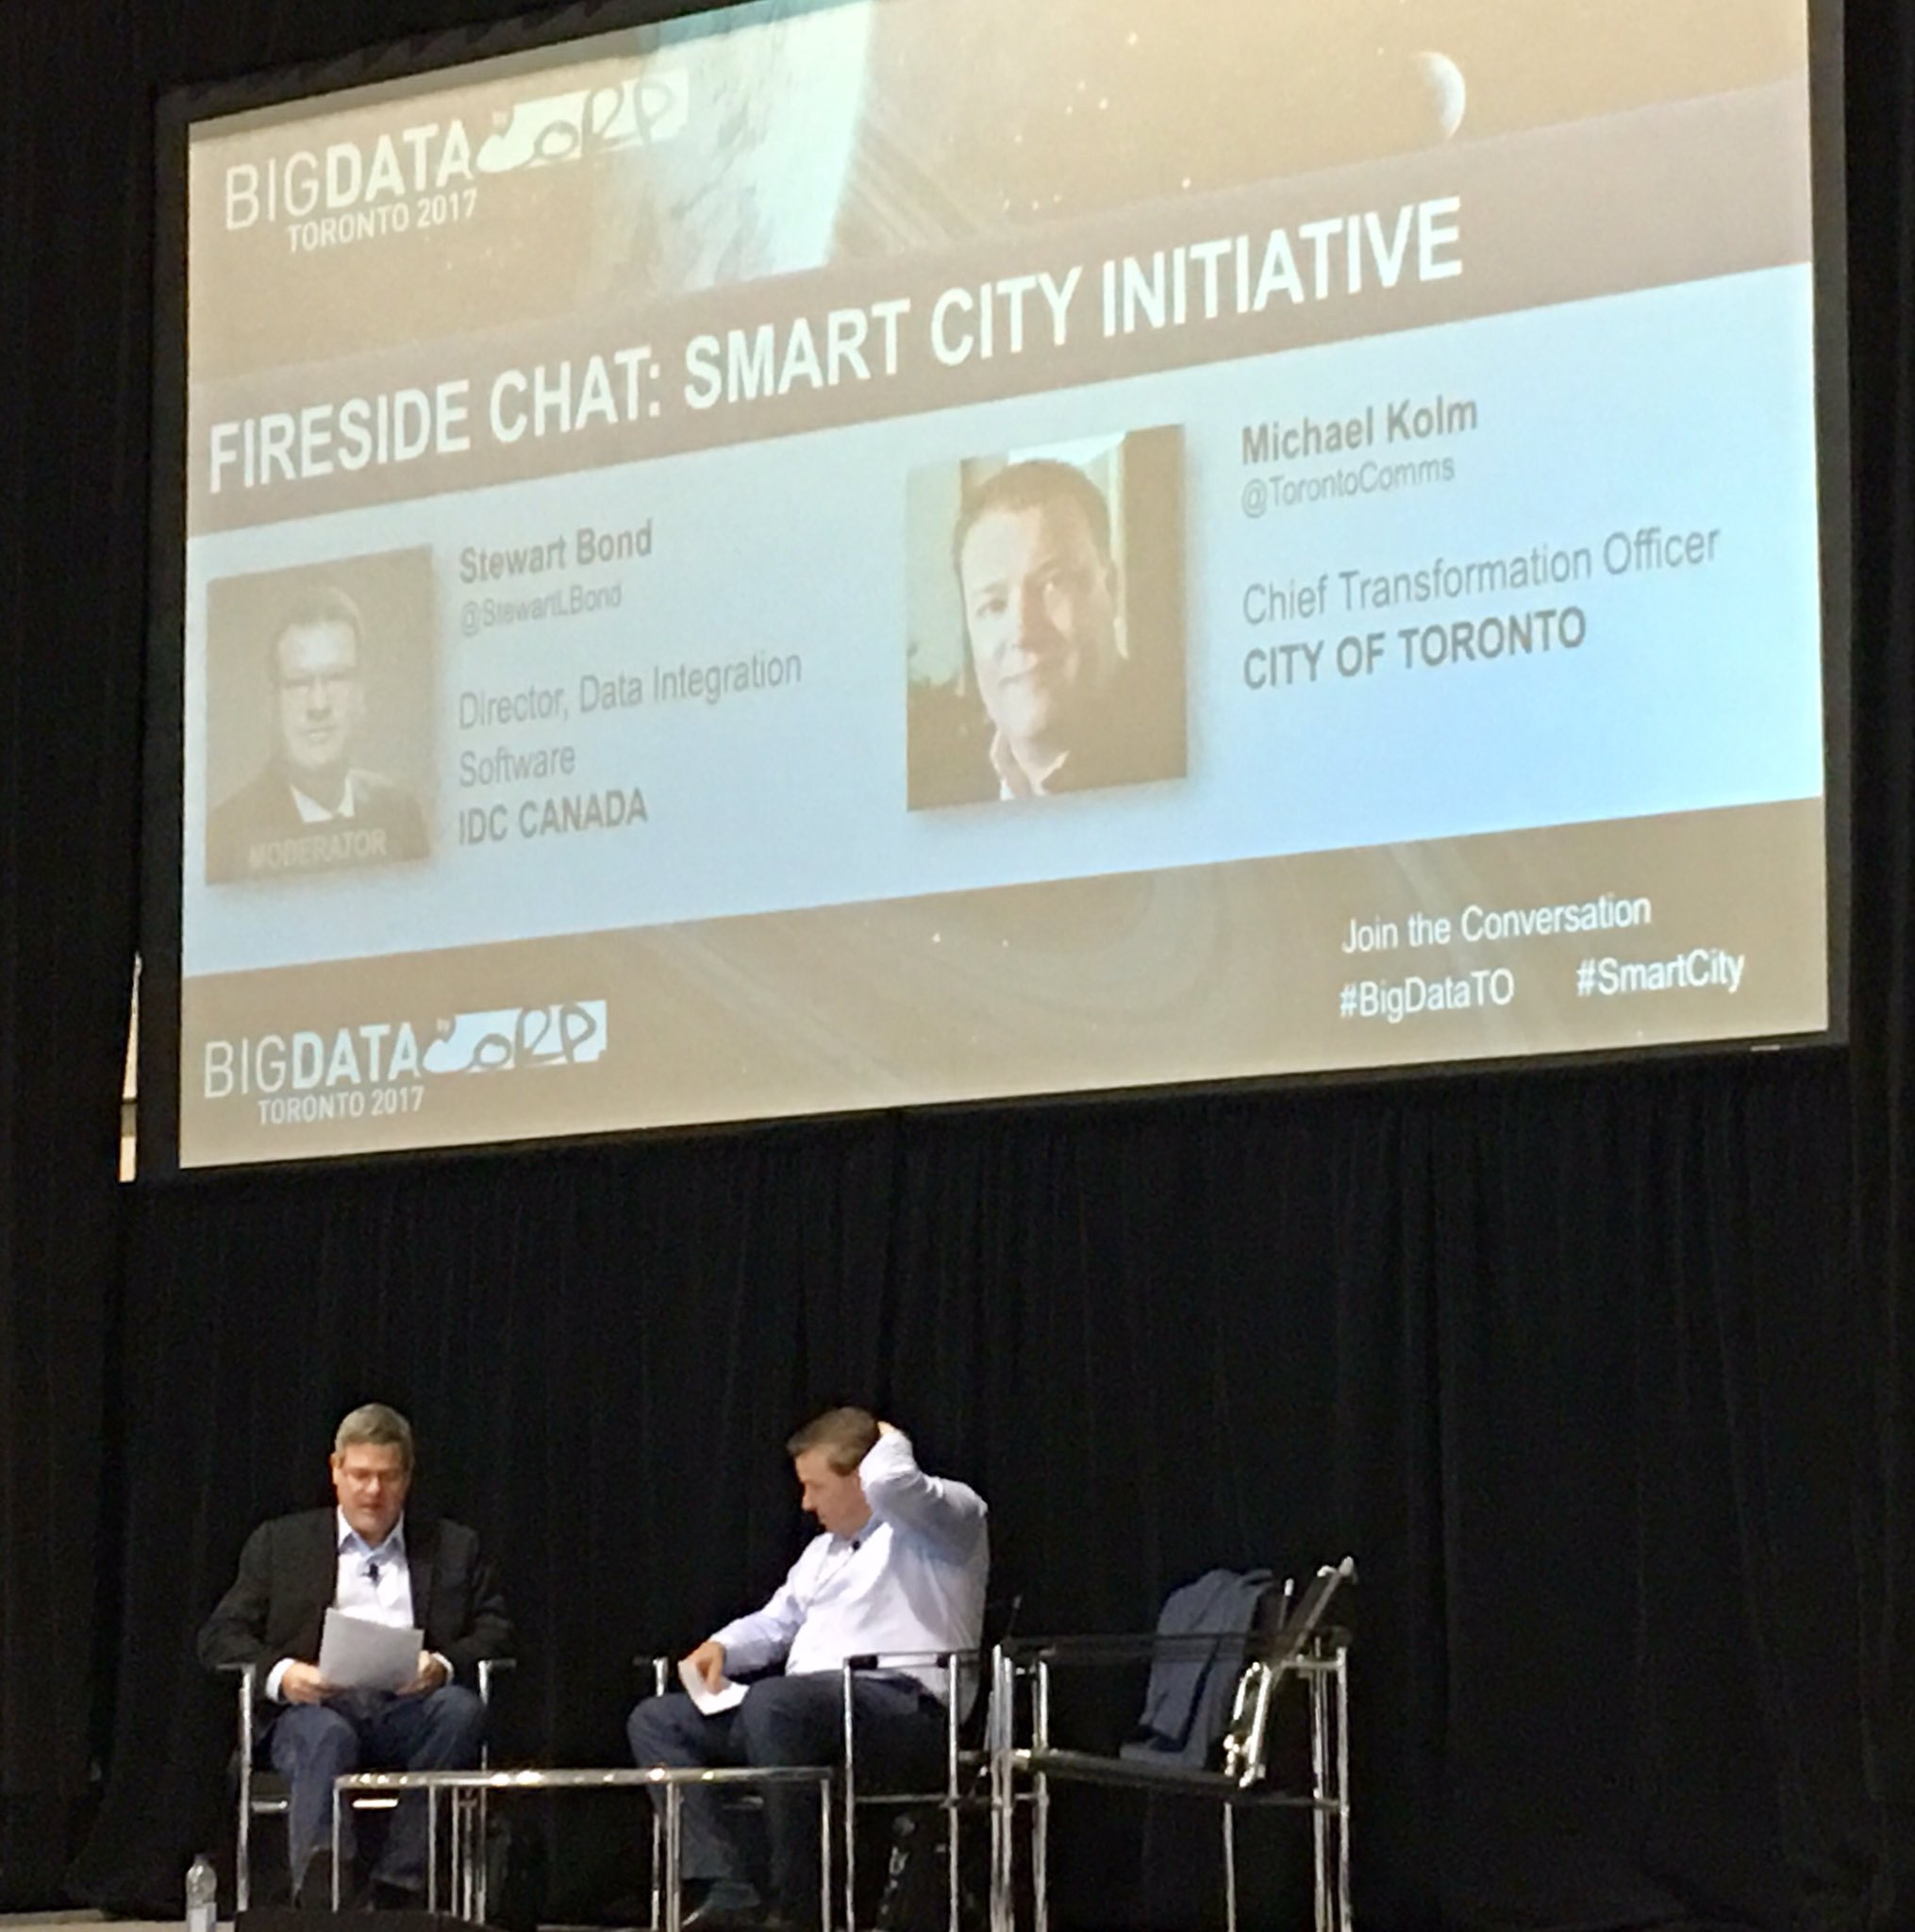 .@StewartLBond in #smartcities discussion with Michael Kolm @TorontoComms #BigDataTO https://t.co/zsFrpadRZY